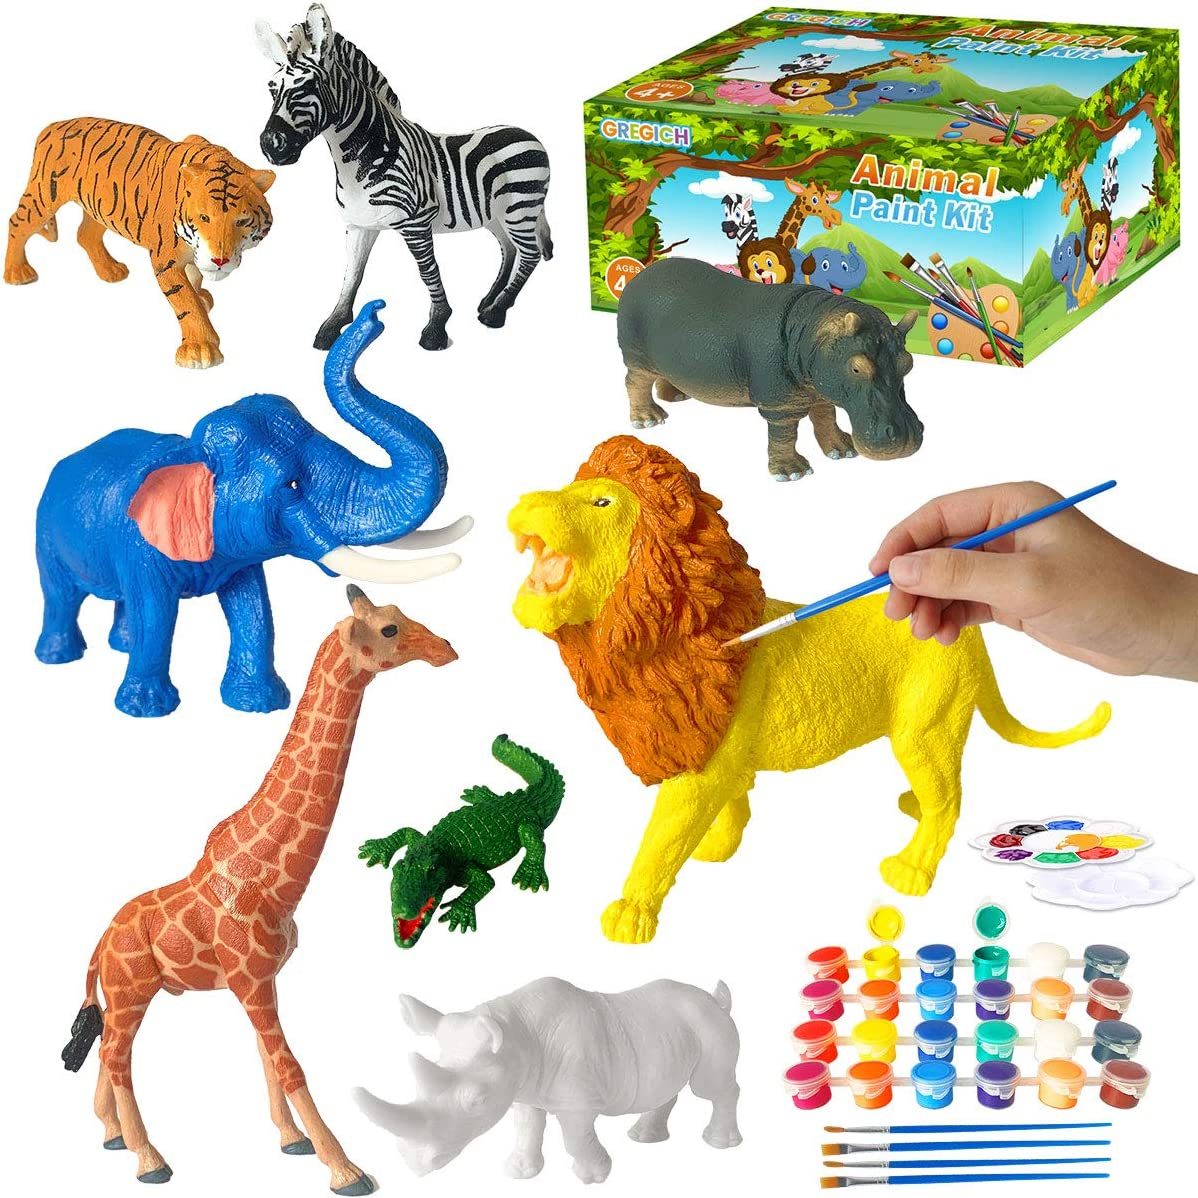 GREGICH Paint Your Own Animal Painting Kit for Kids, Safari Animal DIY Kit Art Supplies Activity for Kids Paint Crafts for Boys Girls, Art and Crafts for Kids Age 4 5 6 7 8 9 Years Old Birthday Gift